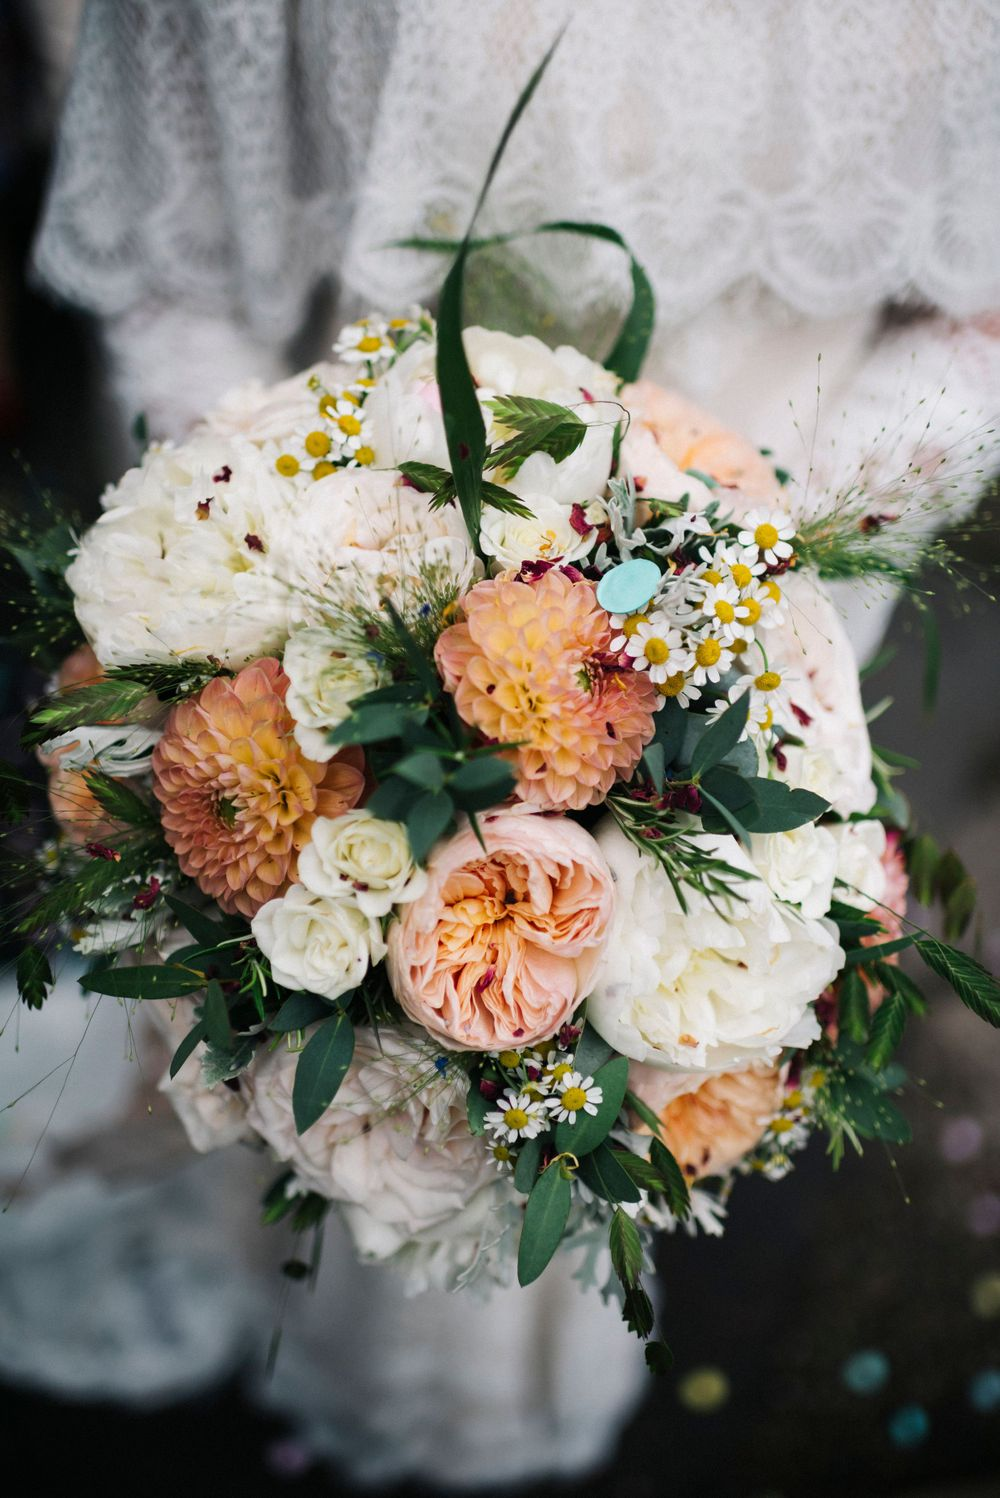 boho wedding, boho wedding bouquet, bouquet with confetti on, orange wedding flowers, boho bride